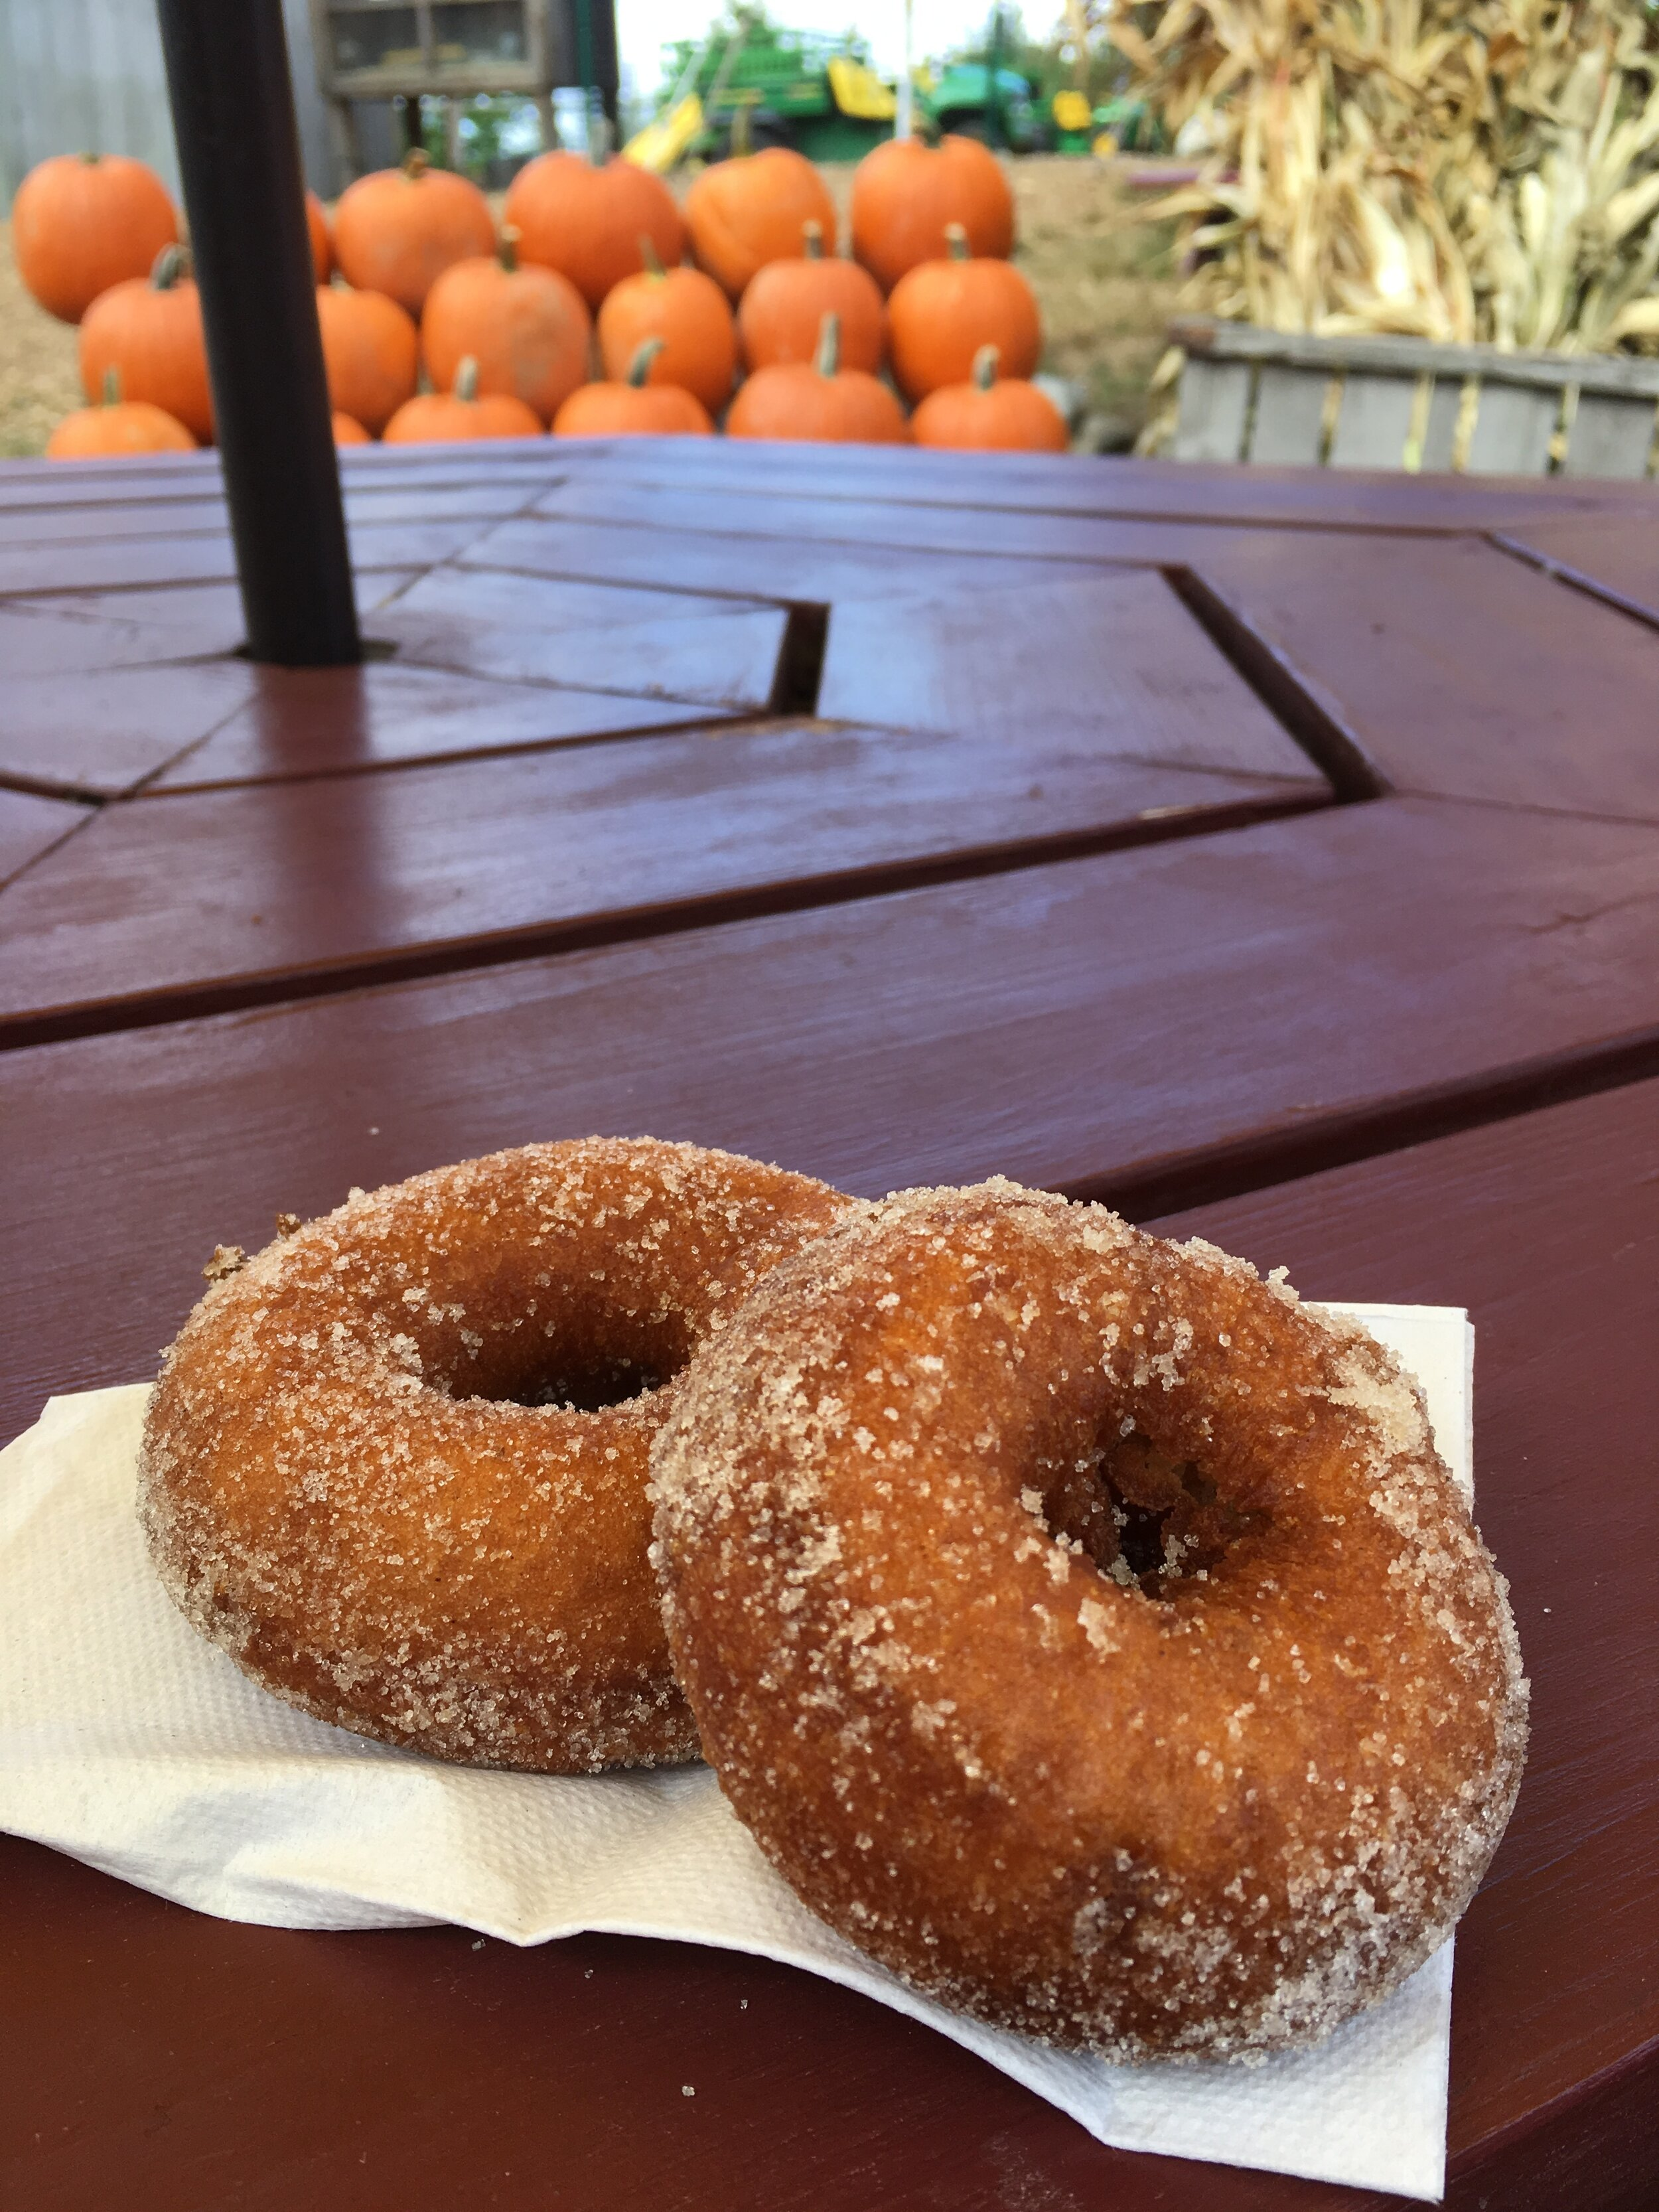 Enjoying Cider donuts at Shelburne Farm in Stow, MA